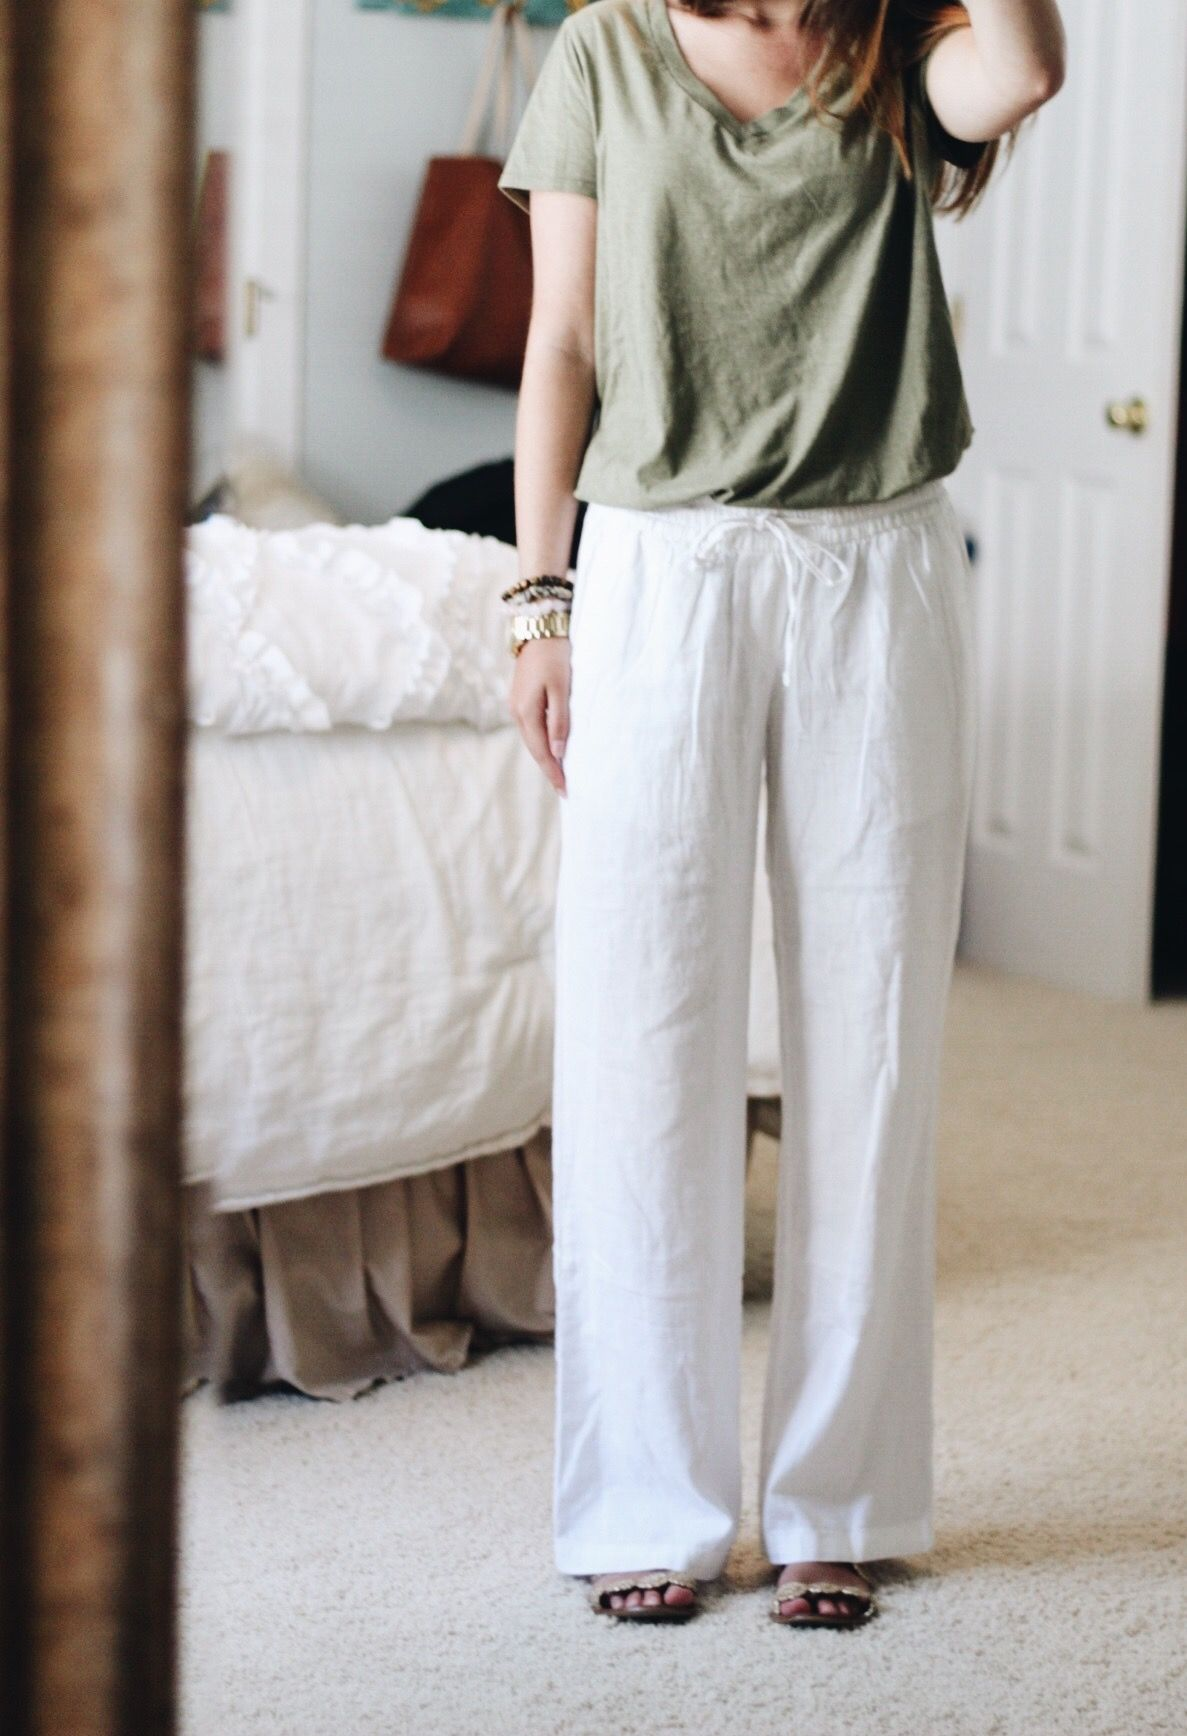 103a5c8772d7 beachy linen pants outfit | Dress Better Than the Rest in 2019 ...